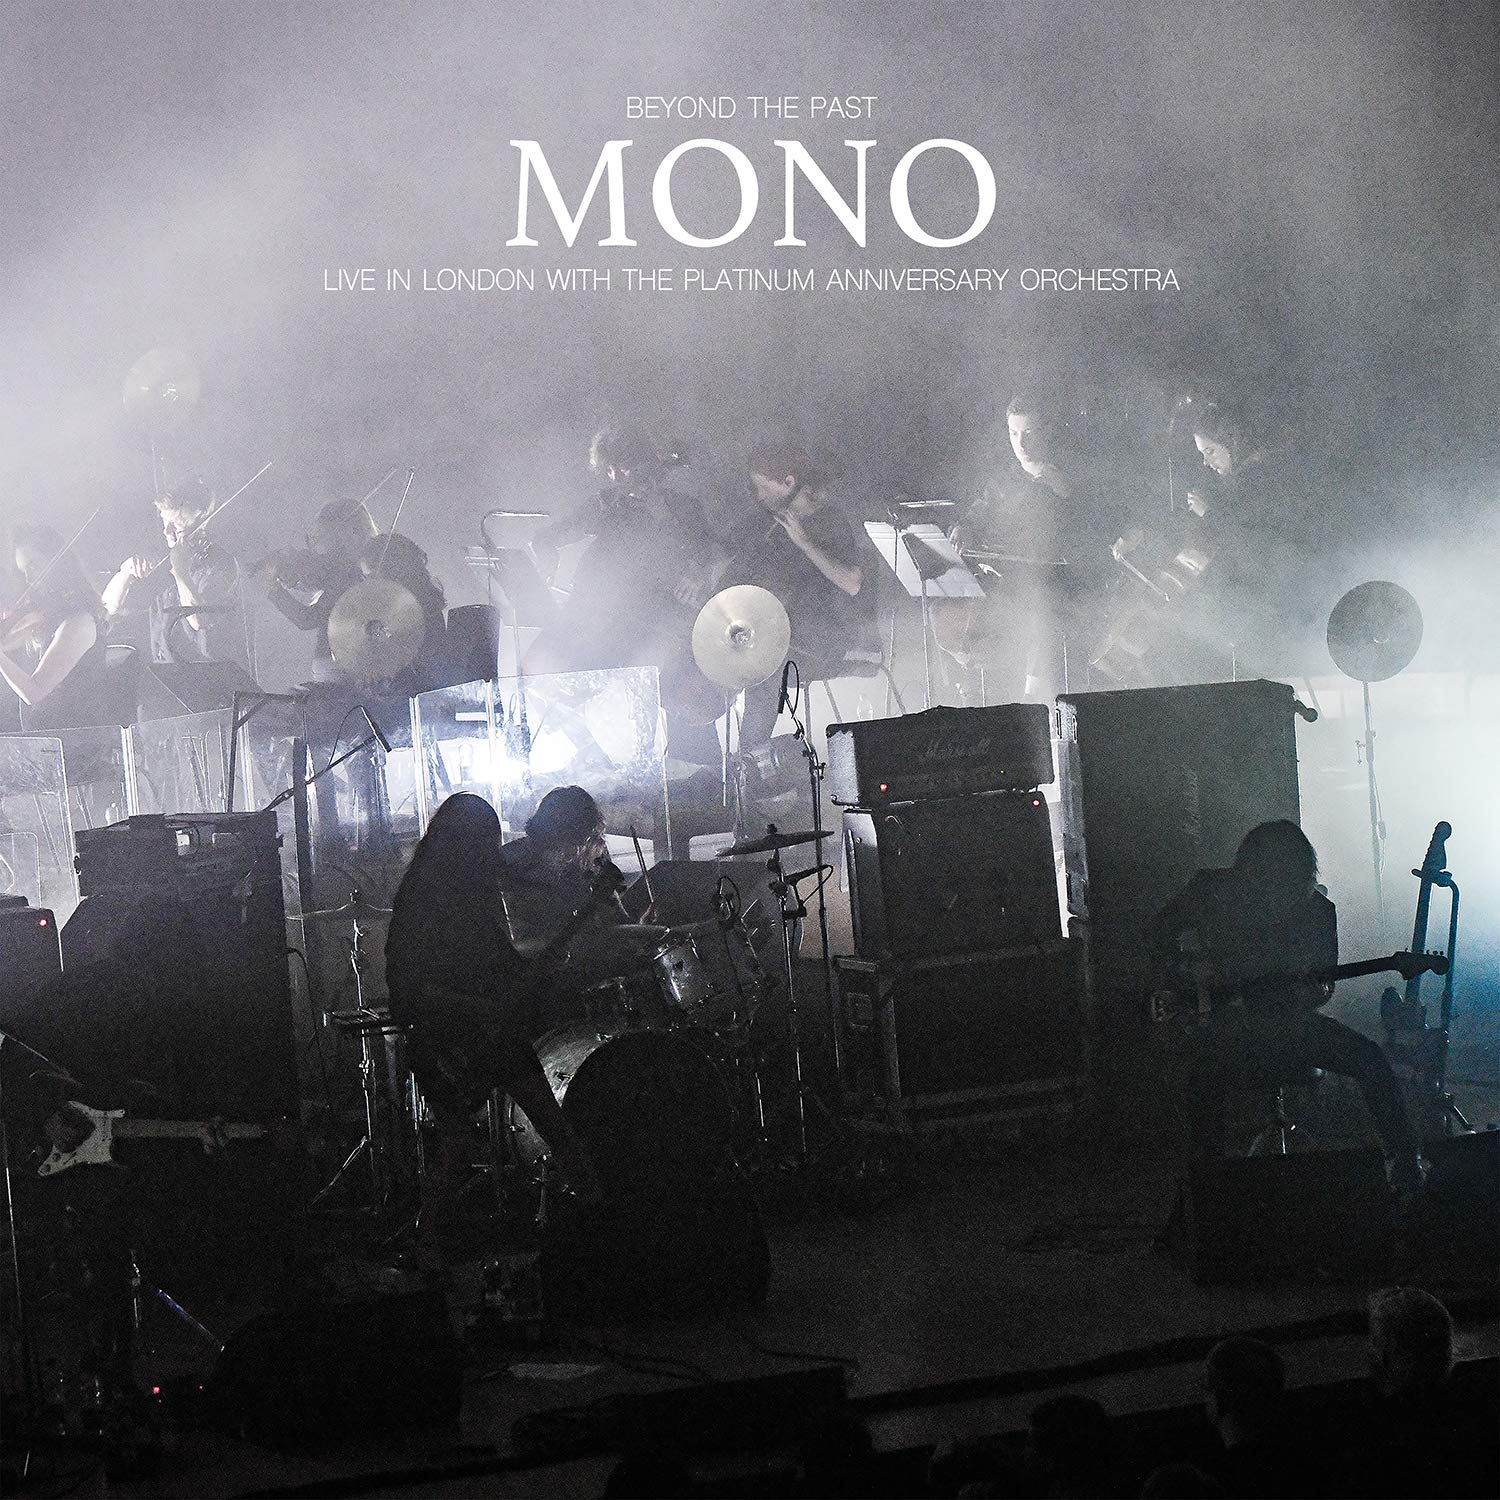 Mono - Beyond the Past - Live in London with The Platinum Anniversary Orchestra (2021) [FLAC] Download